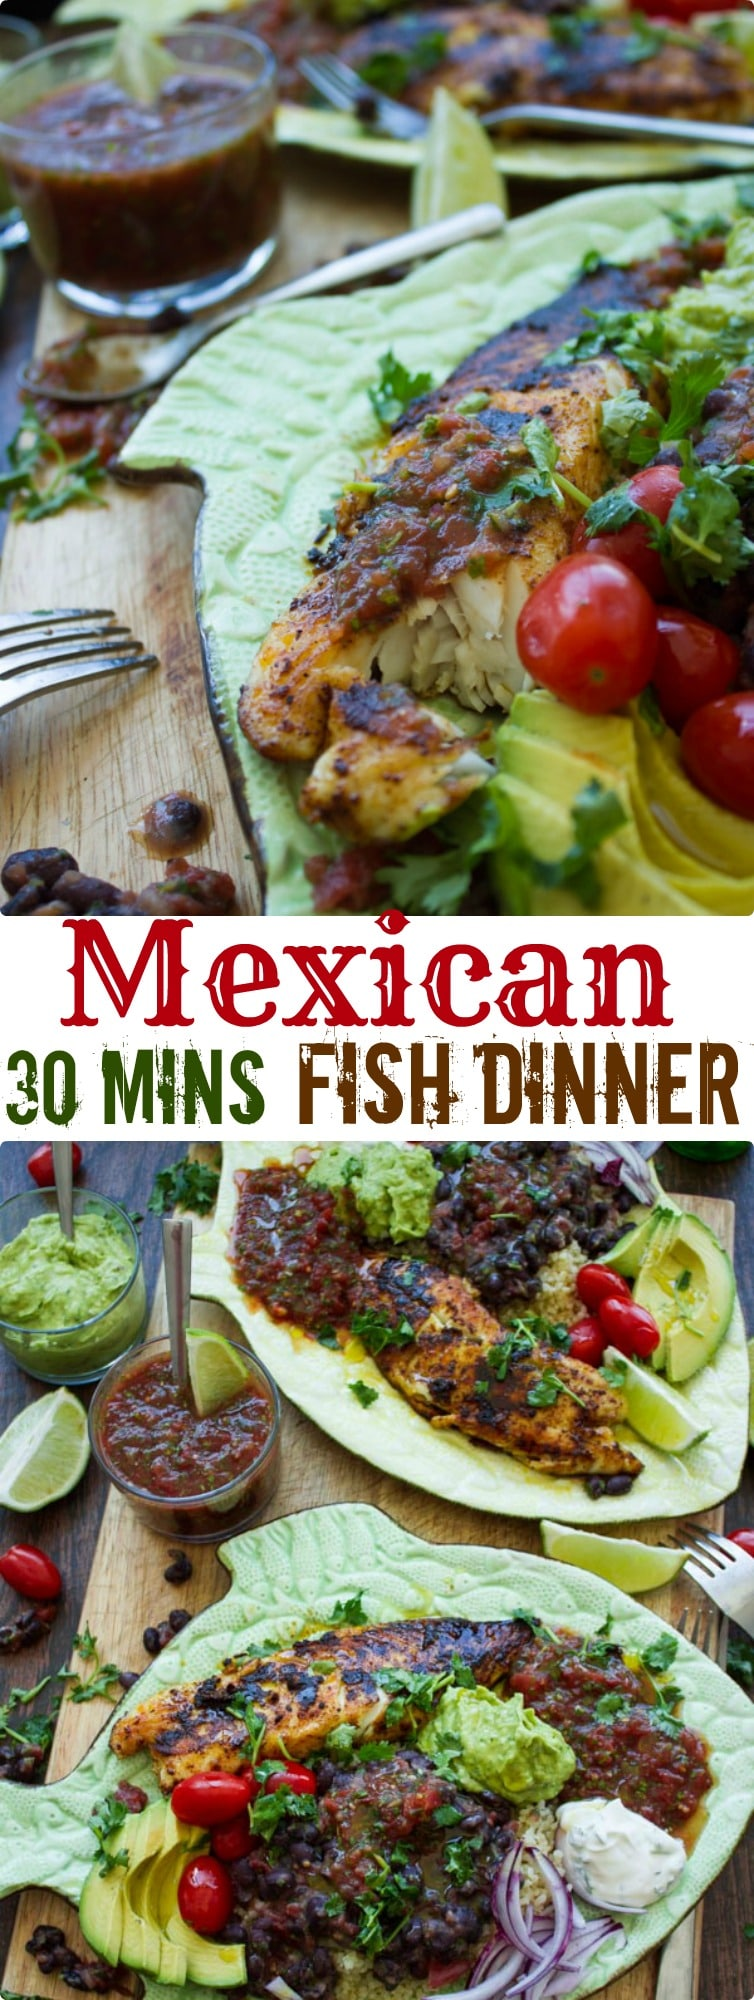 Mexican 30 Minutes Fish Dinner | Pressed for time? This Mexican feast of pan-fried tilapia fillets with Mexican black beans, homemade guacamole and restaurant-style salsa comes together in just 30 minutes and is healthy, nutritious and outrageously delicious! #dinner, #healthy, #fish, #easydinner, #protein, #guacamole, #salsa, #Mexicanfood